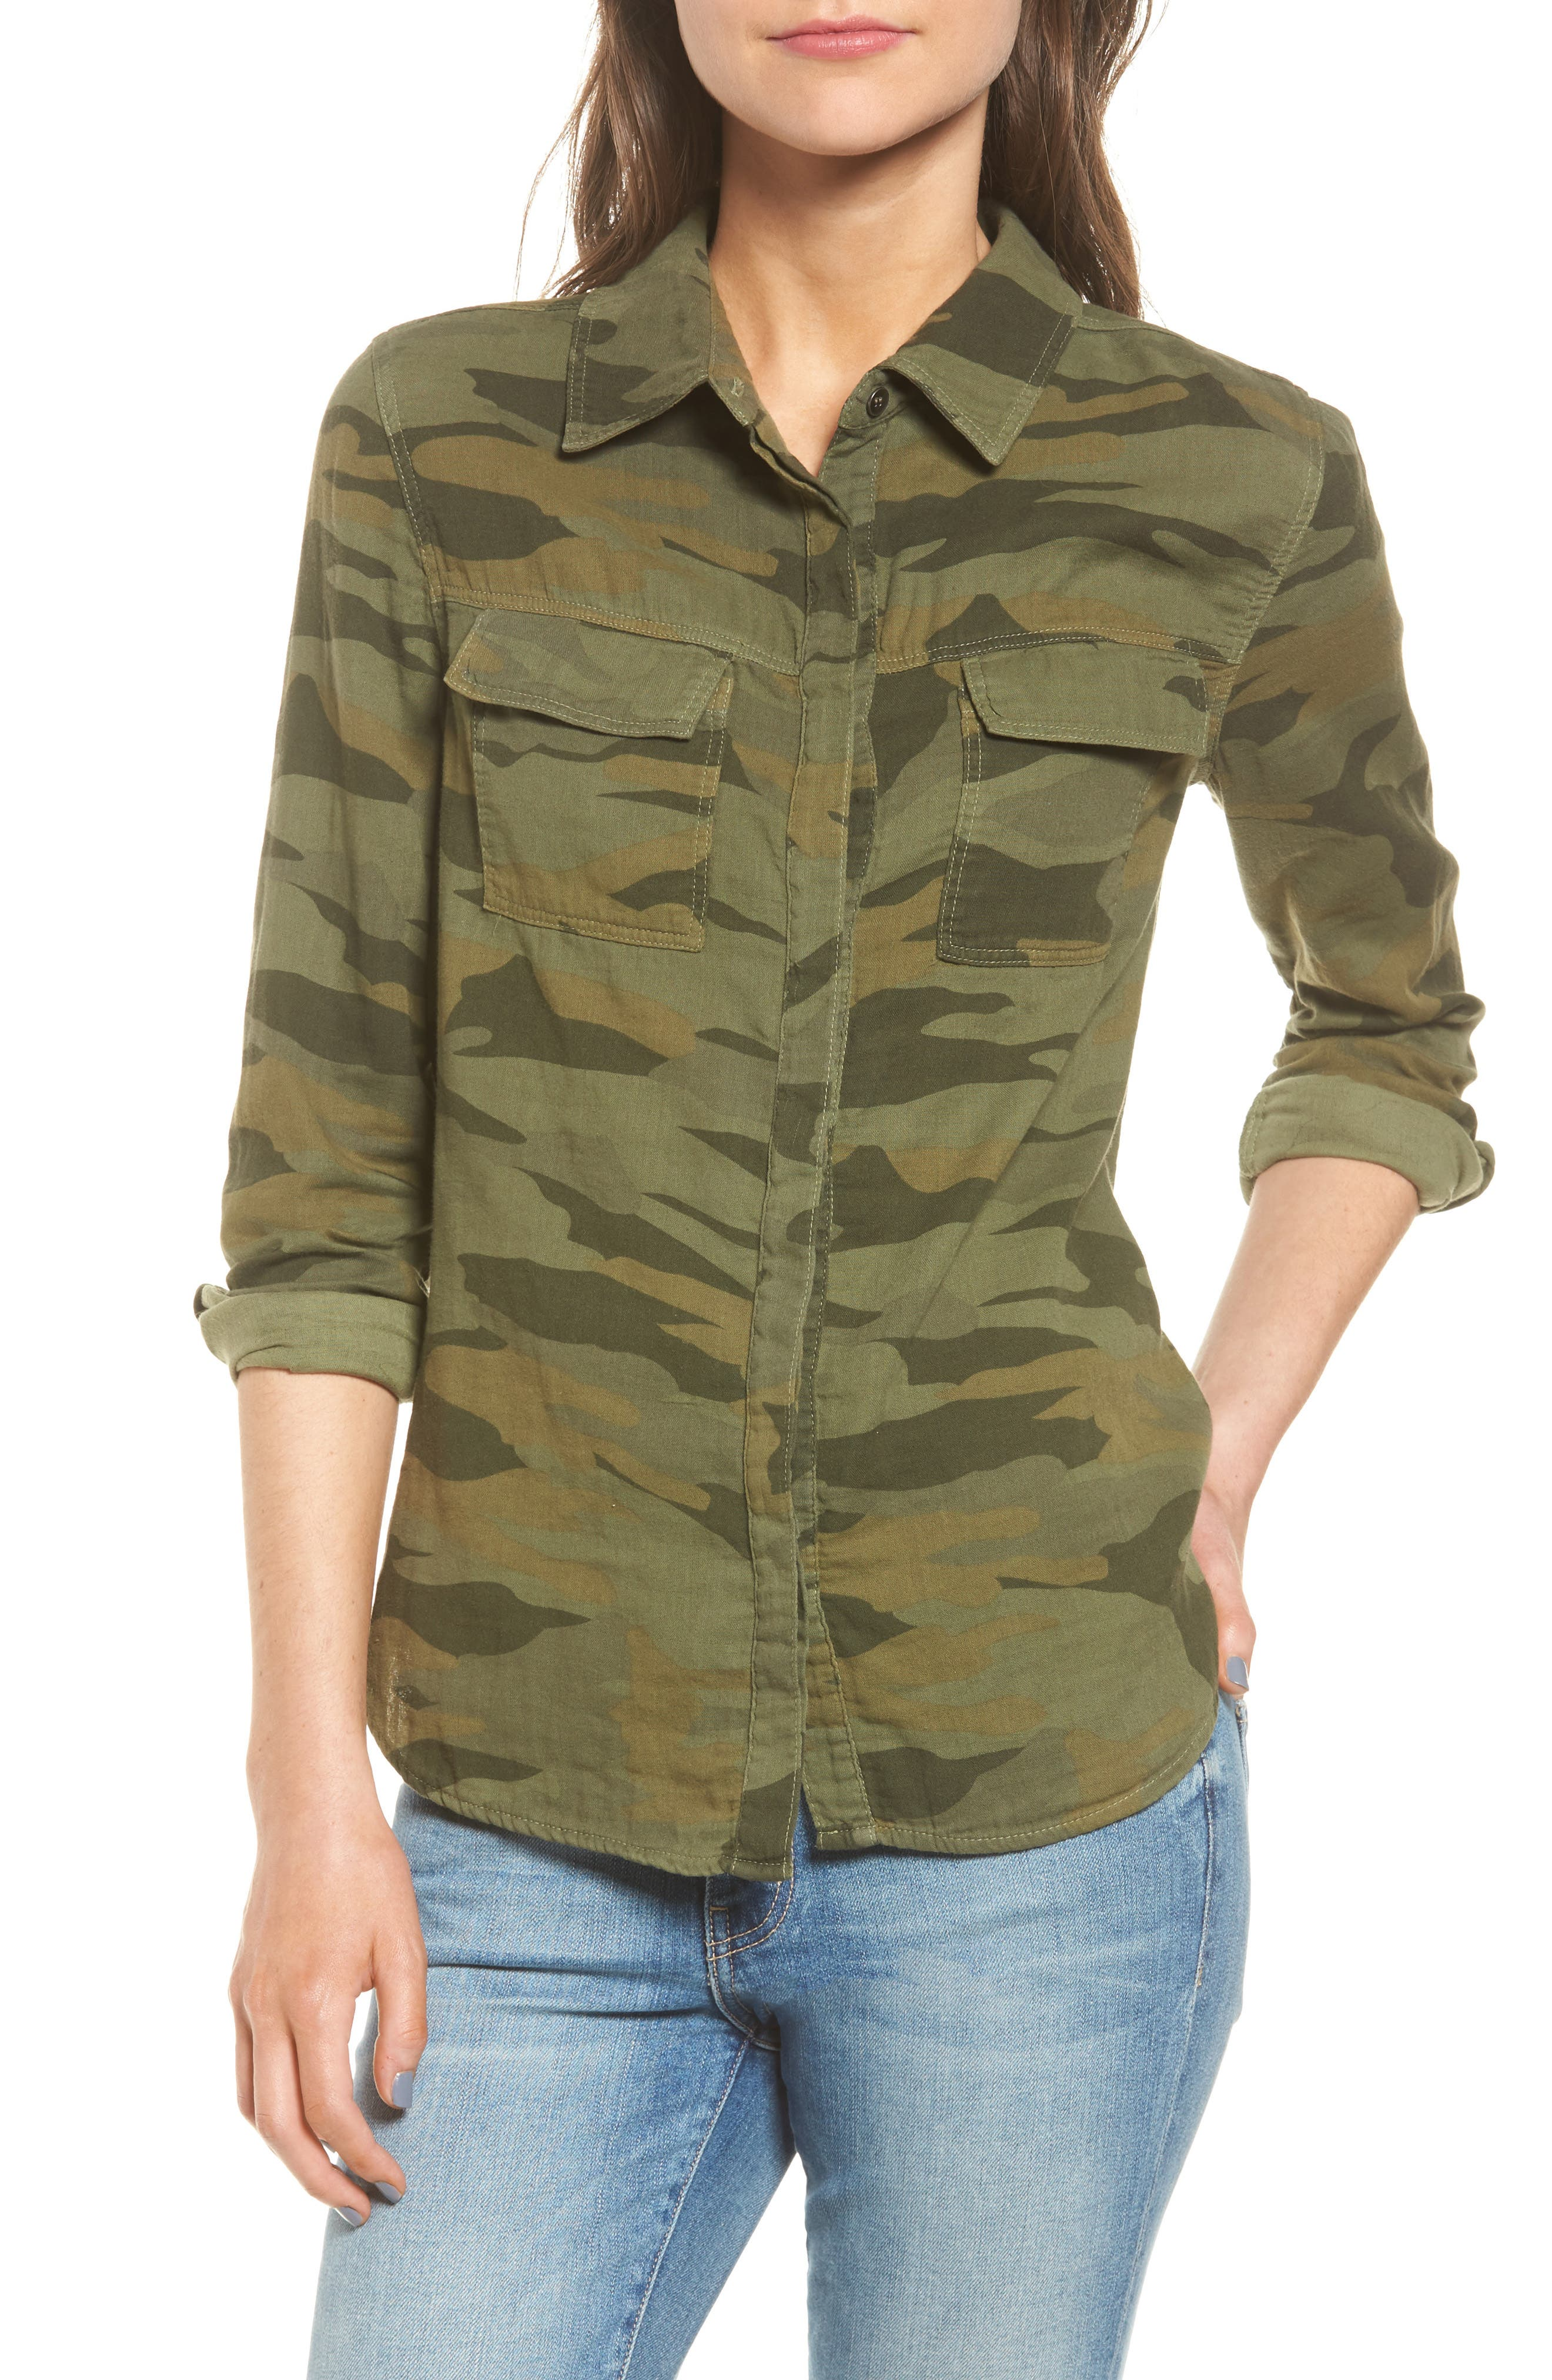 Splendid Camo Double Pocket Shirt